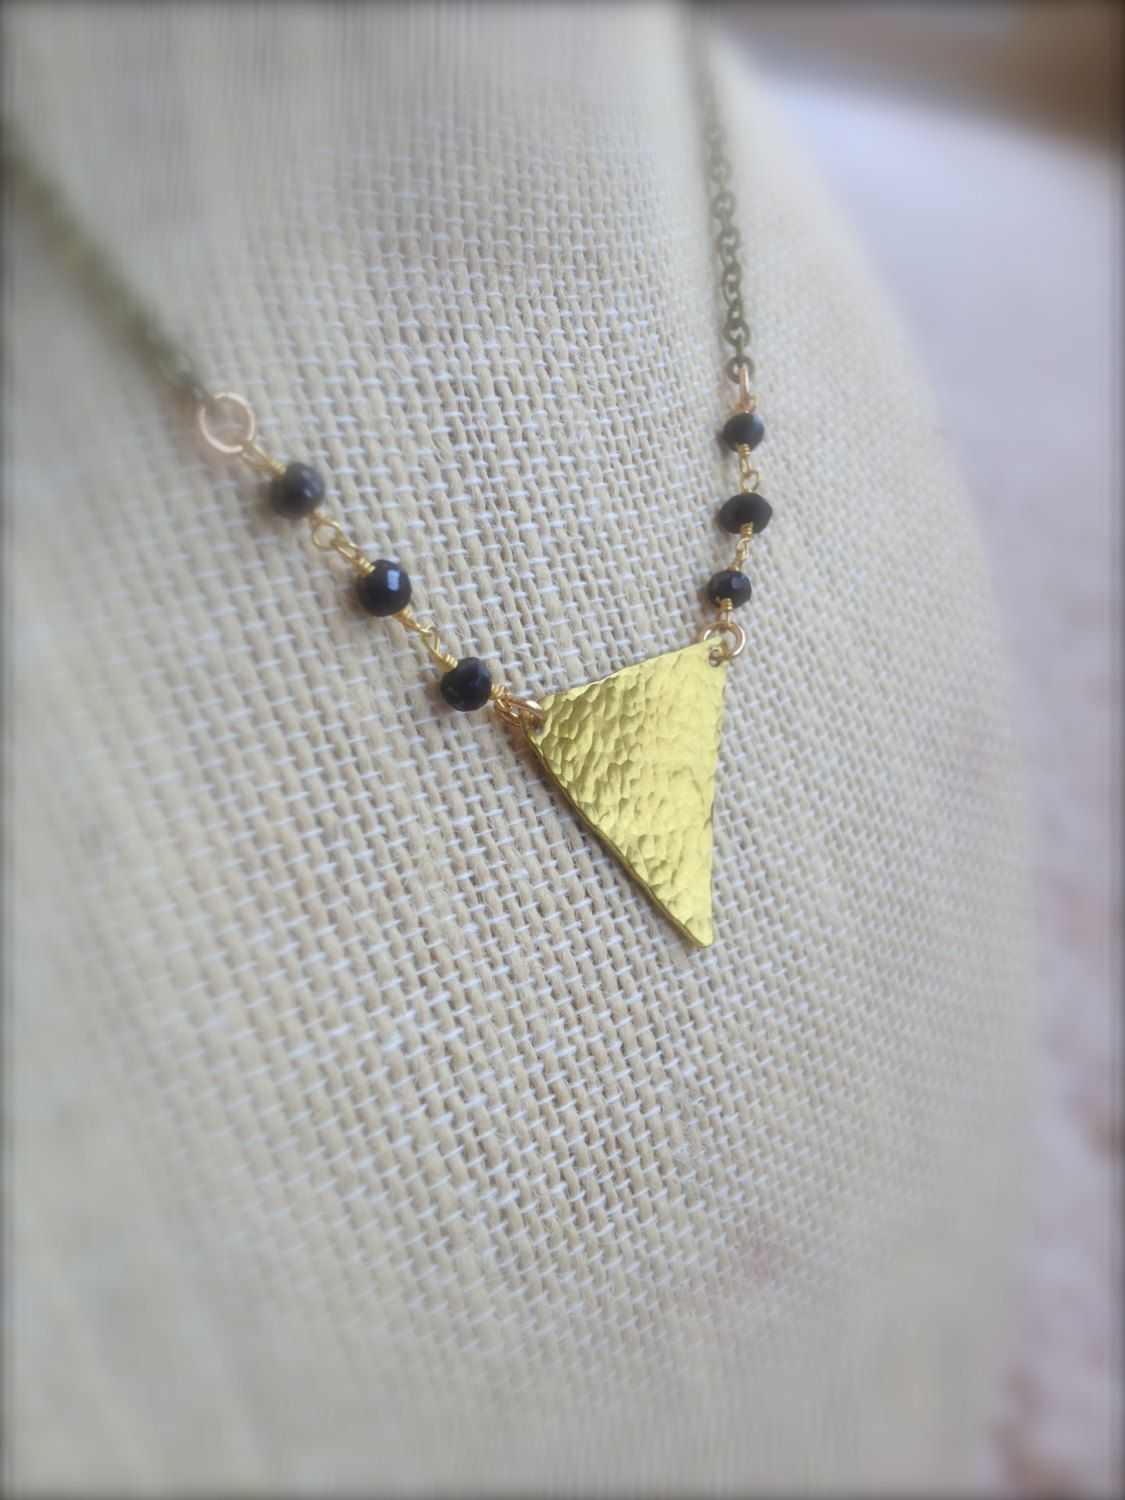 Hammered Brass Triangle Necklace w/ Black Spinel Rosary Beads / Handmade Boho Chic Geometric Jewelry by MuffyandTrudy on Etsy